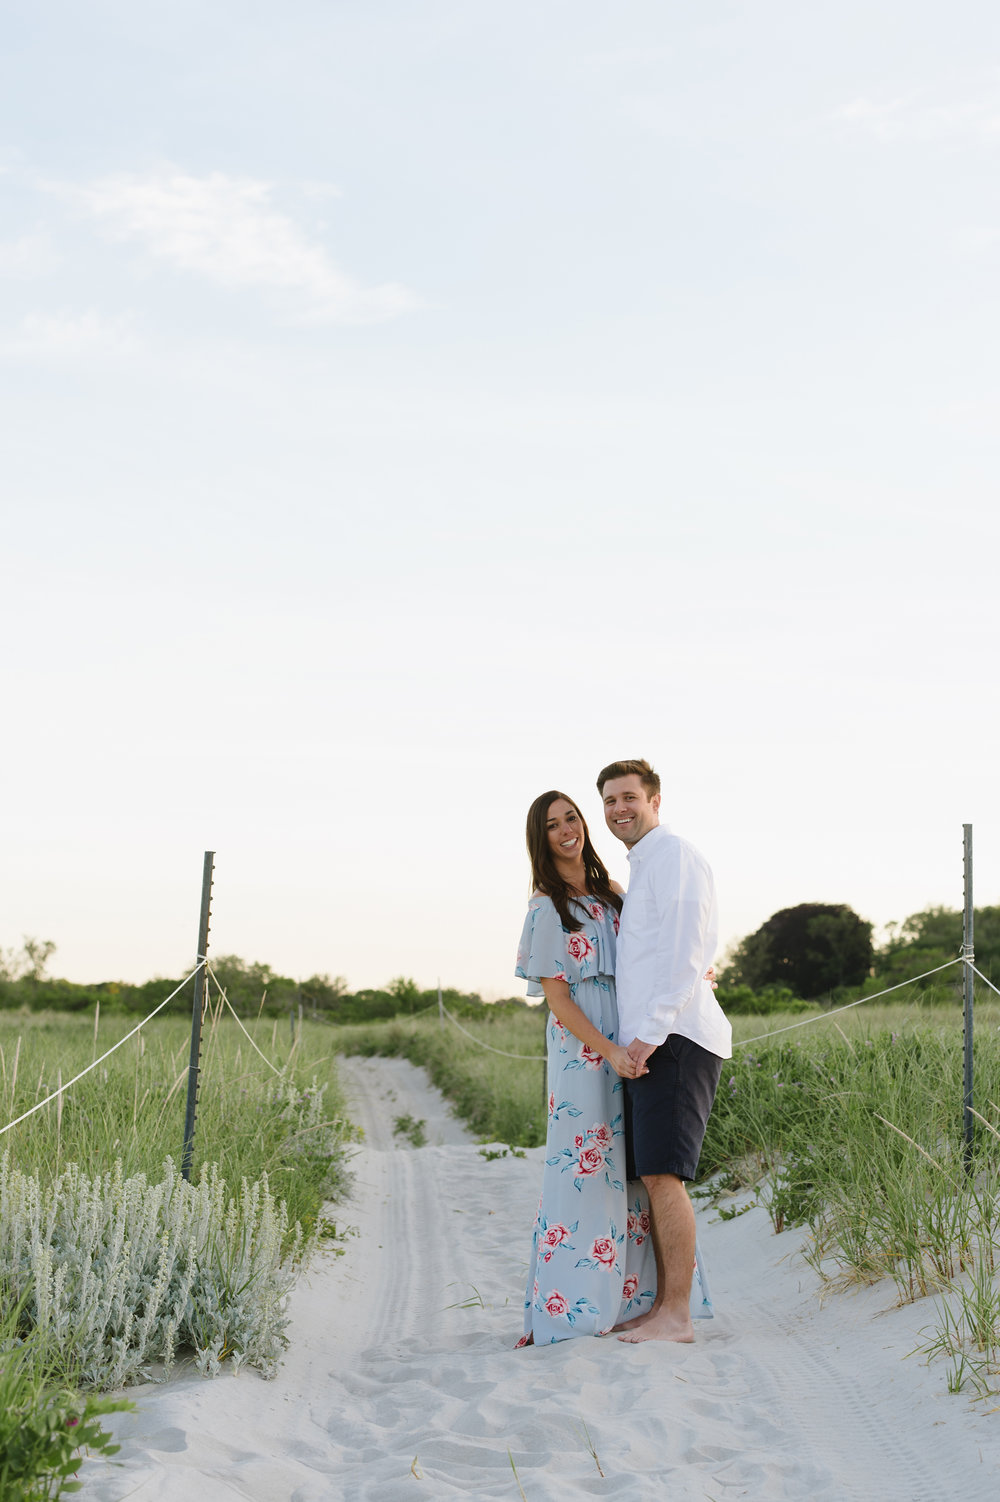 Beach-Engagement-Session-Boston012.jpg